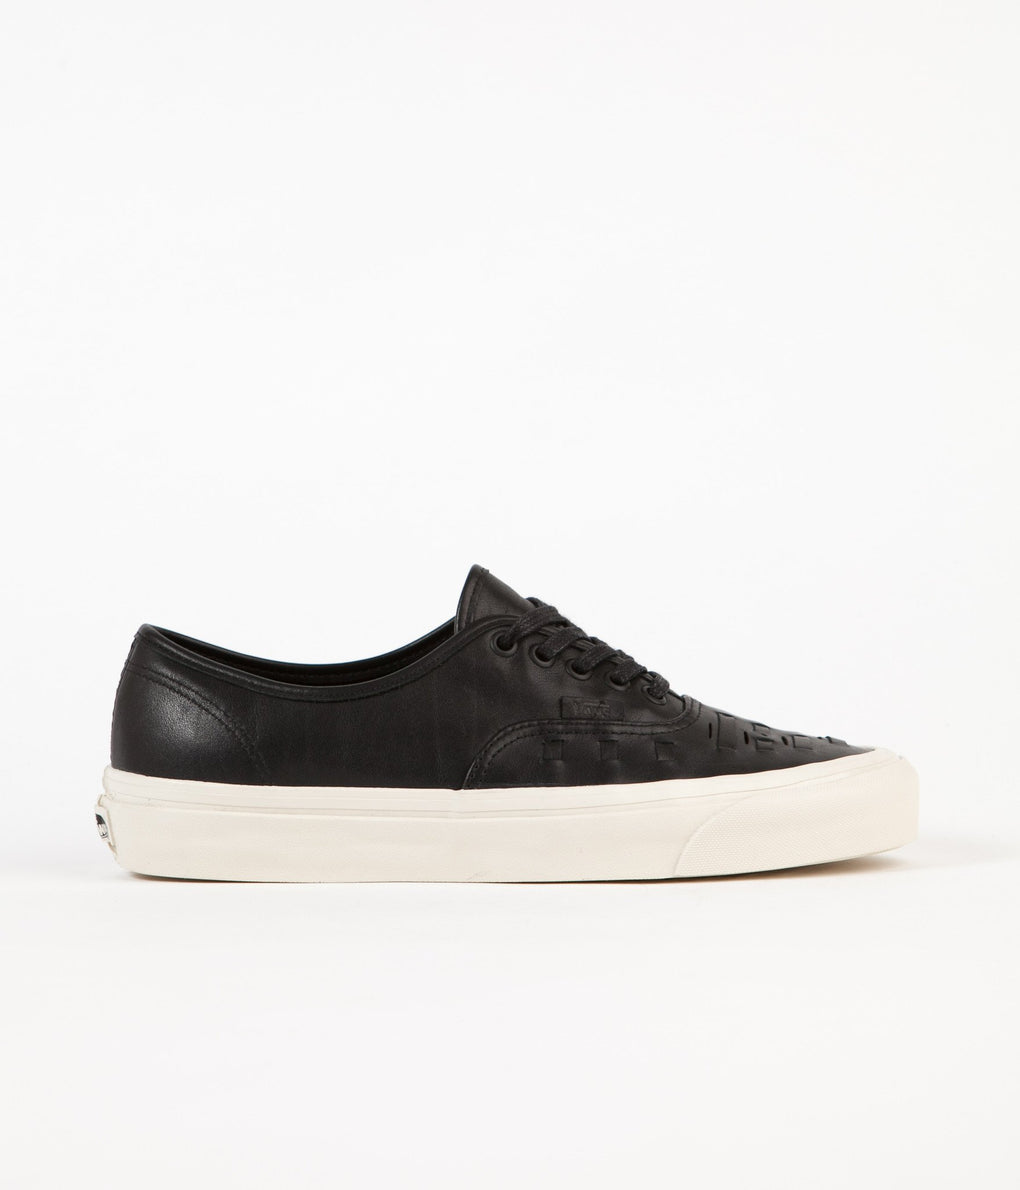 Vans Authentic Weave DX Leather Shoes - Black